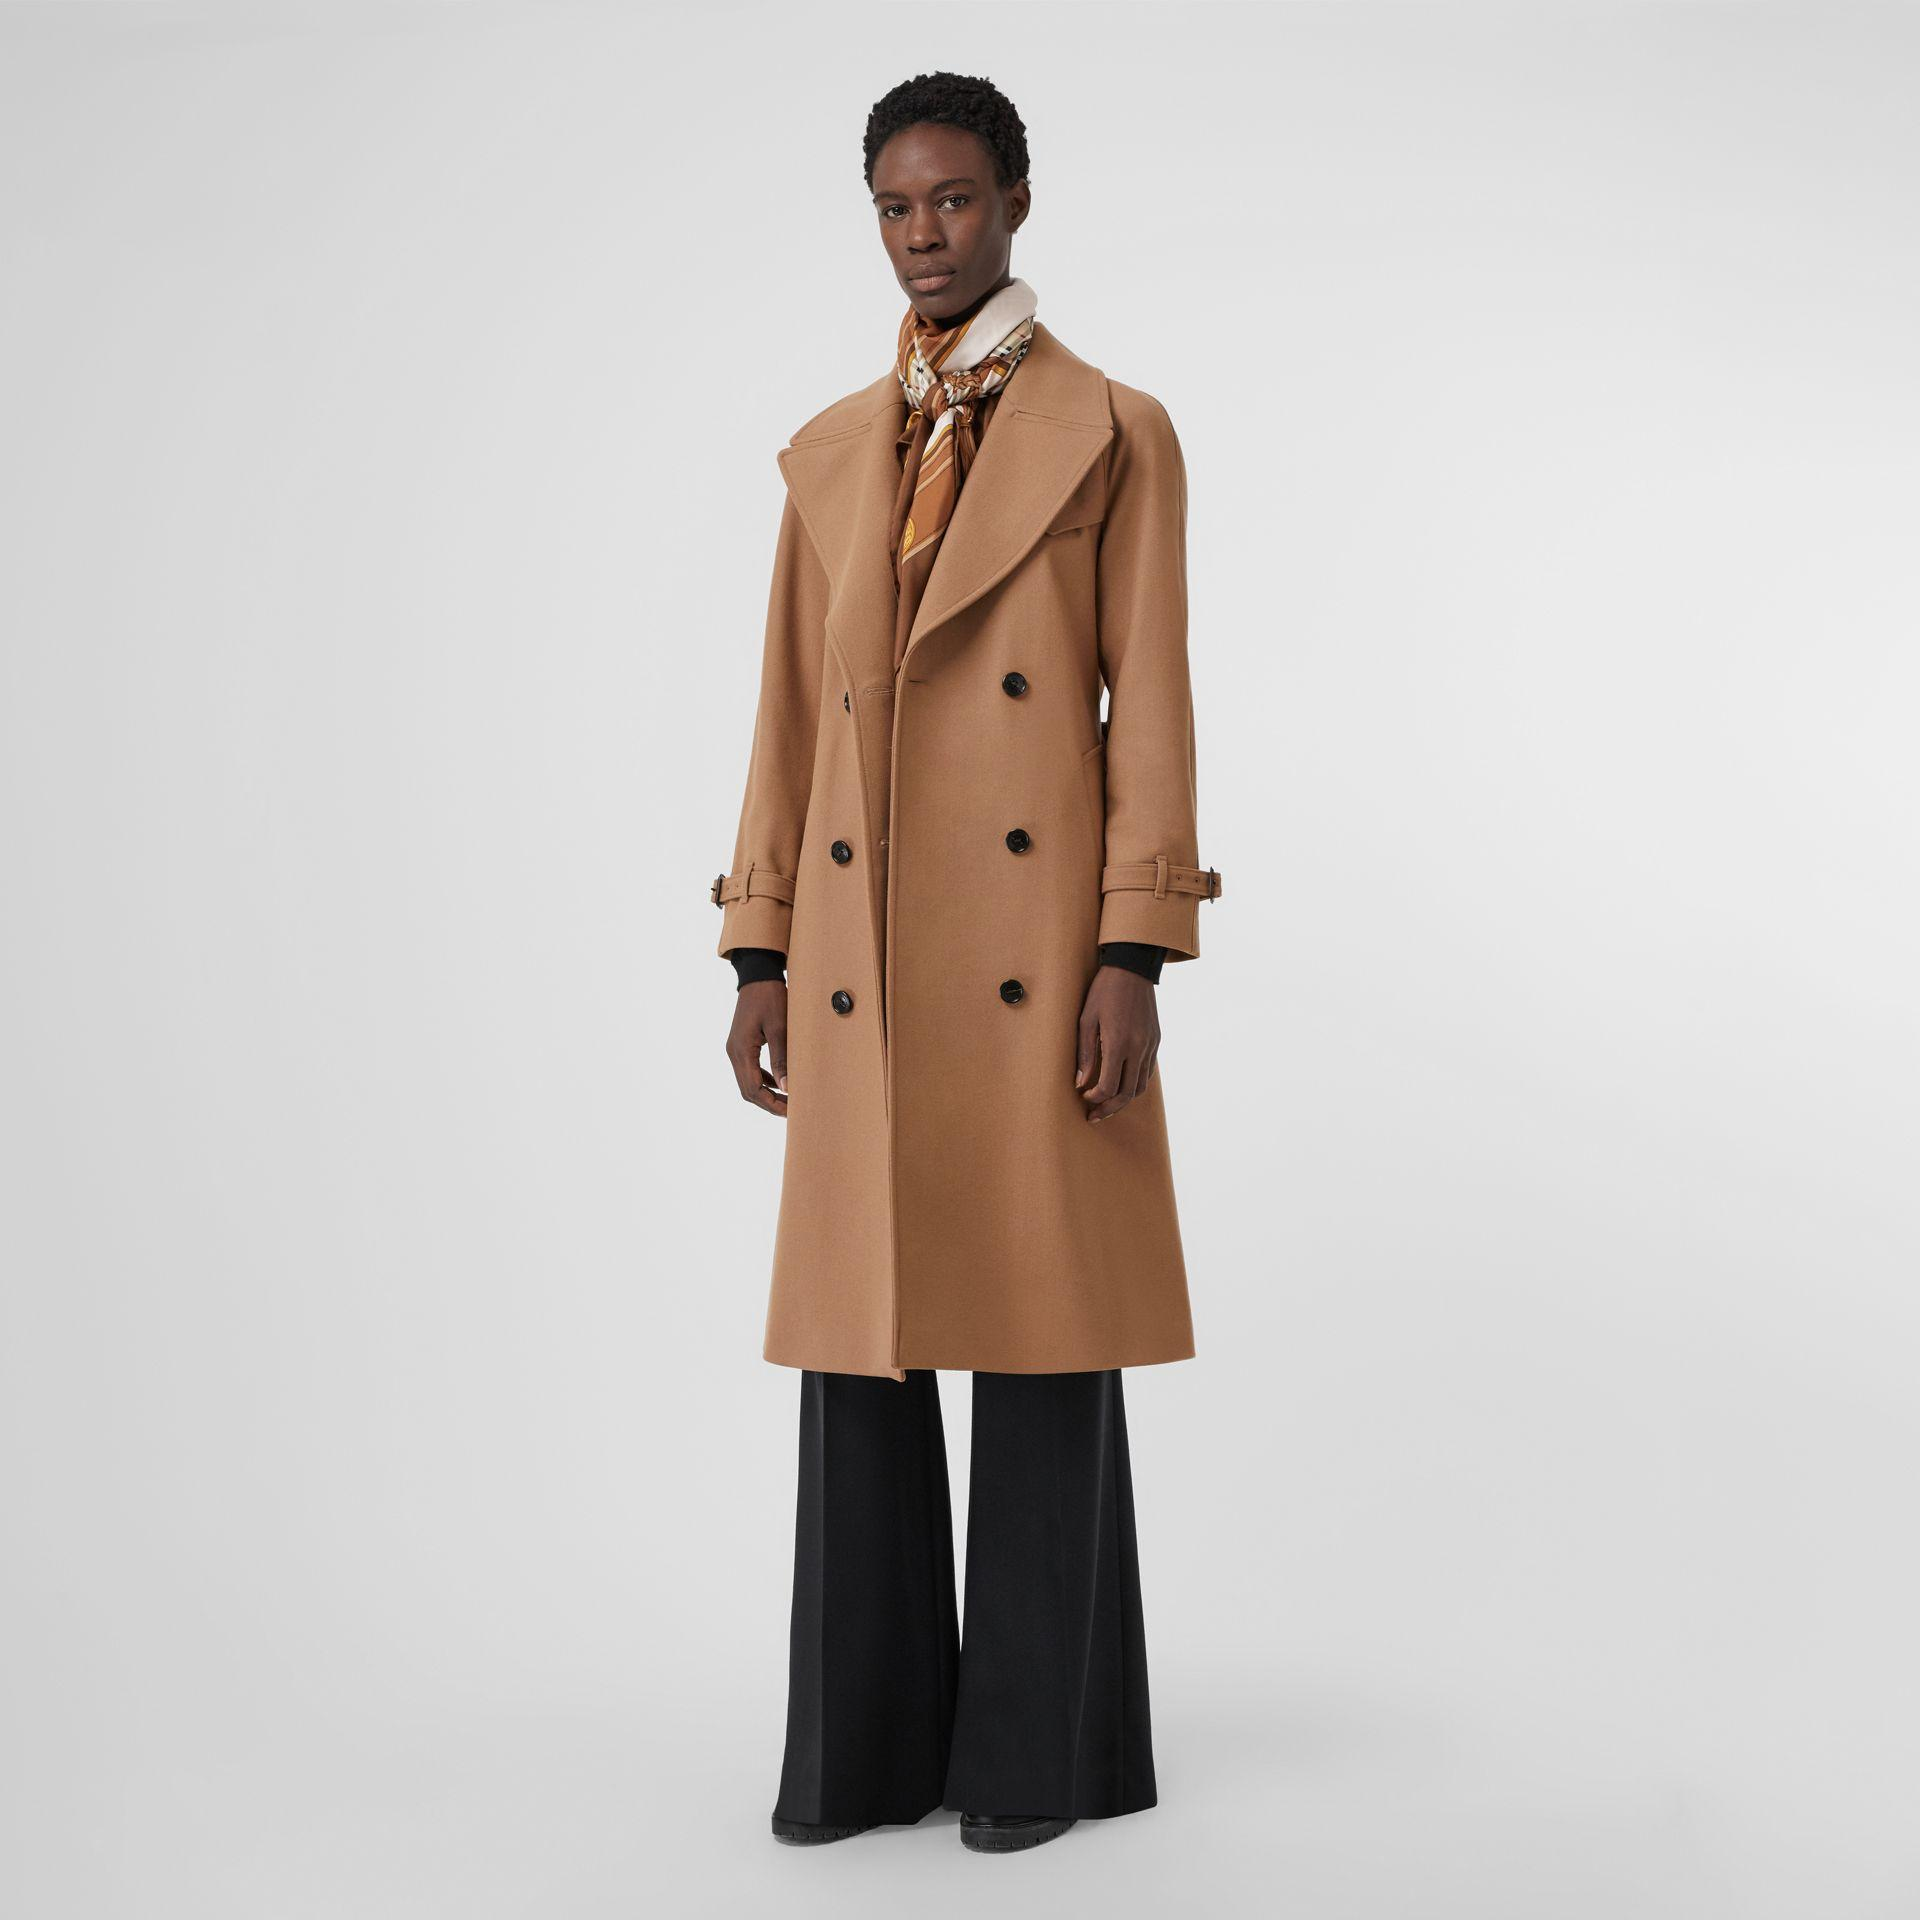 Burberry Herringbone Wool Cashmere Blend Trench Coat In Camel